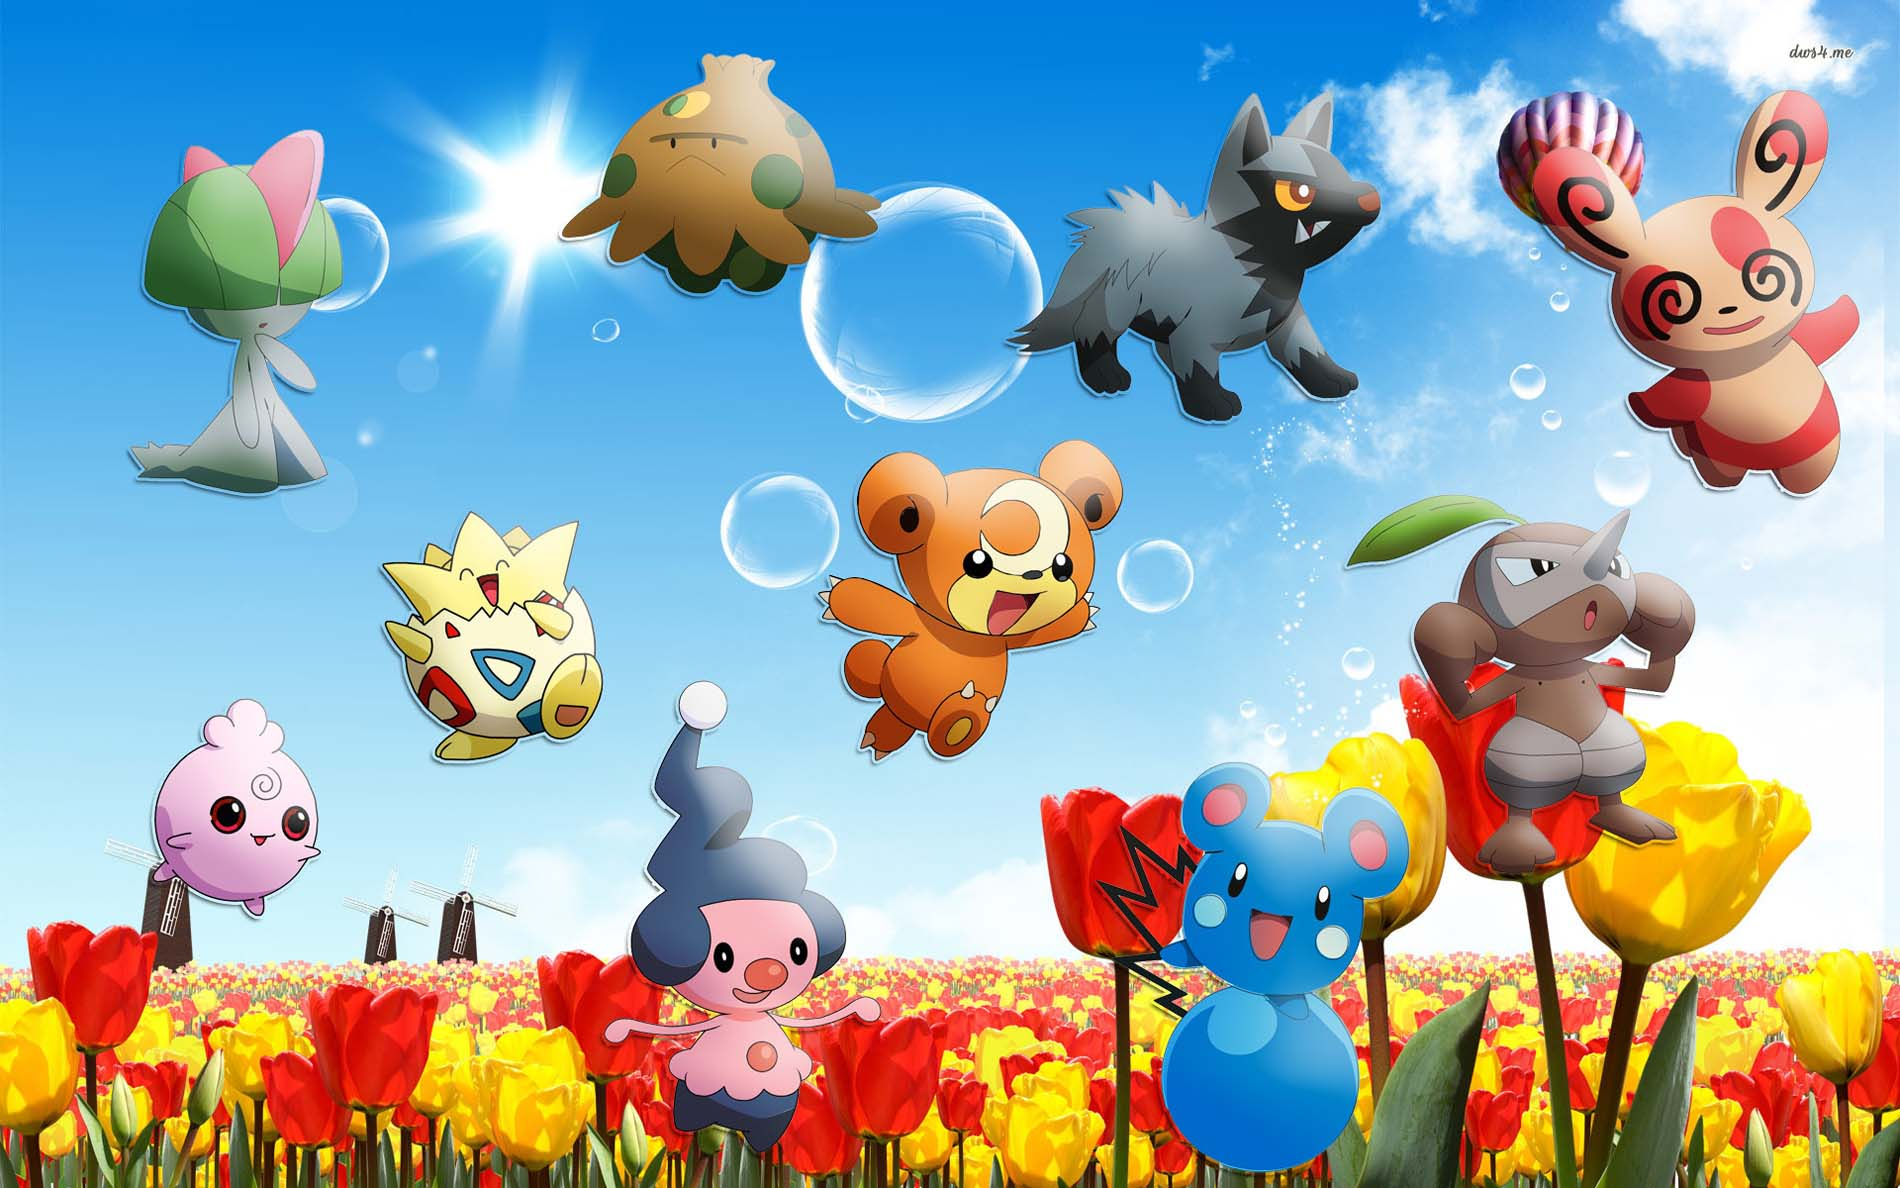 Cute Pokemon Wallpaper Res 1900x1188PX Cutest